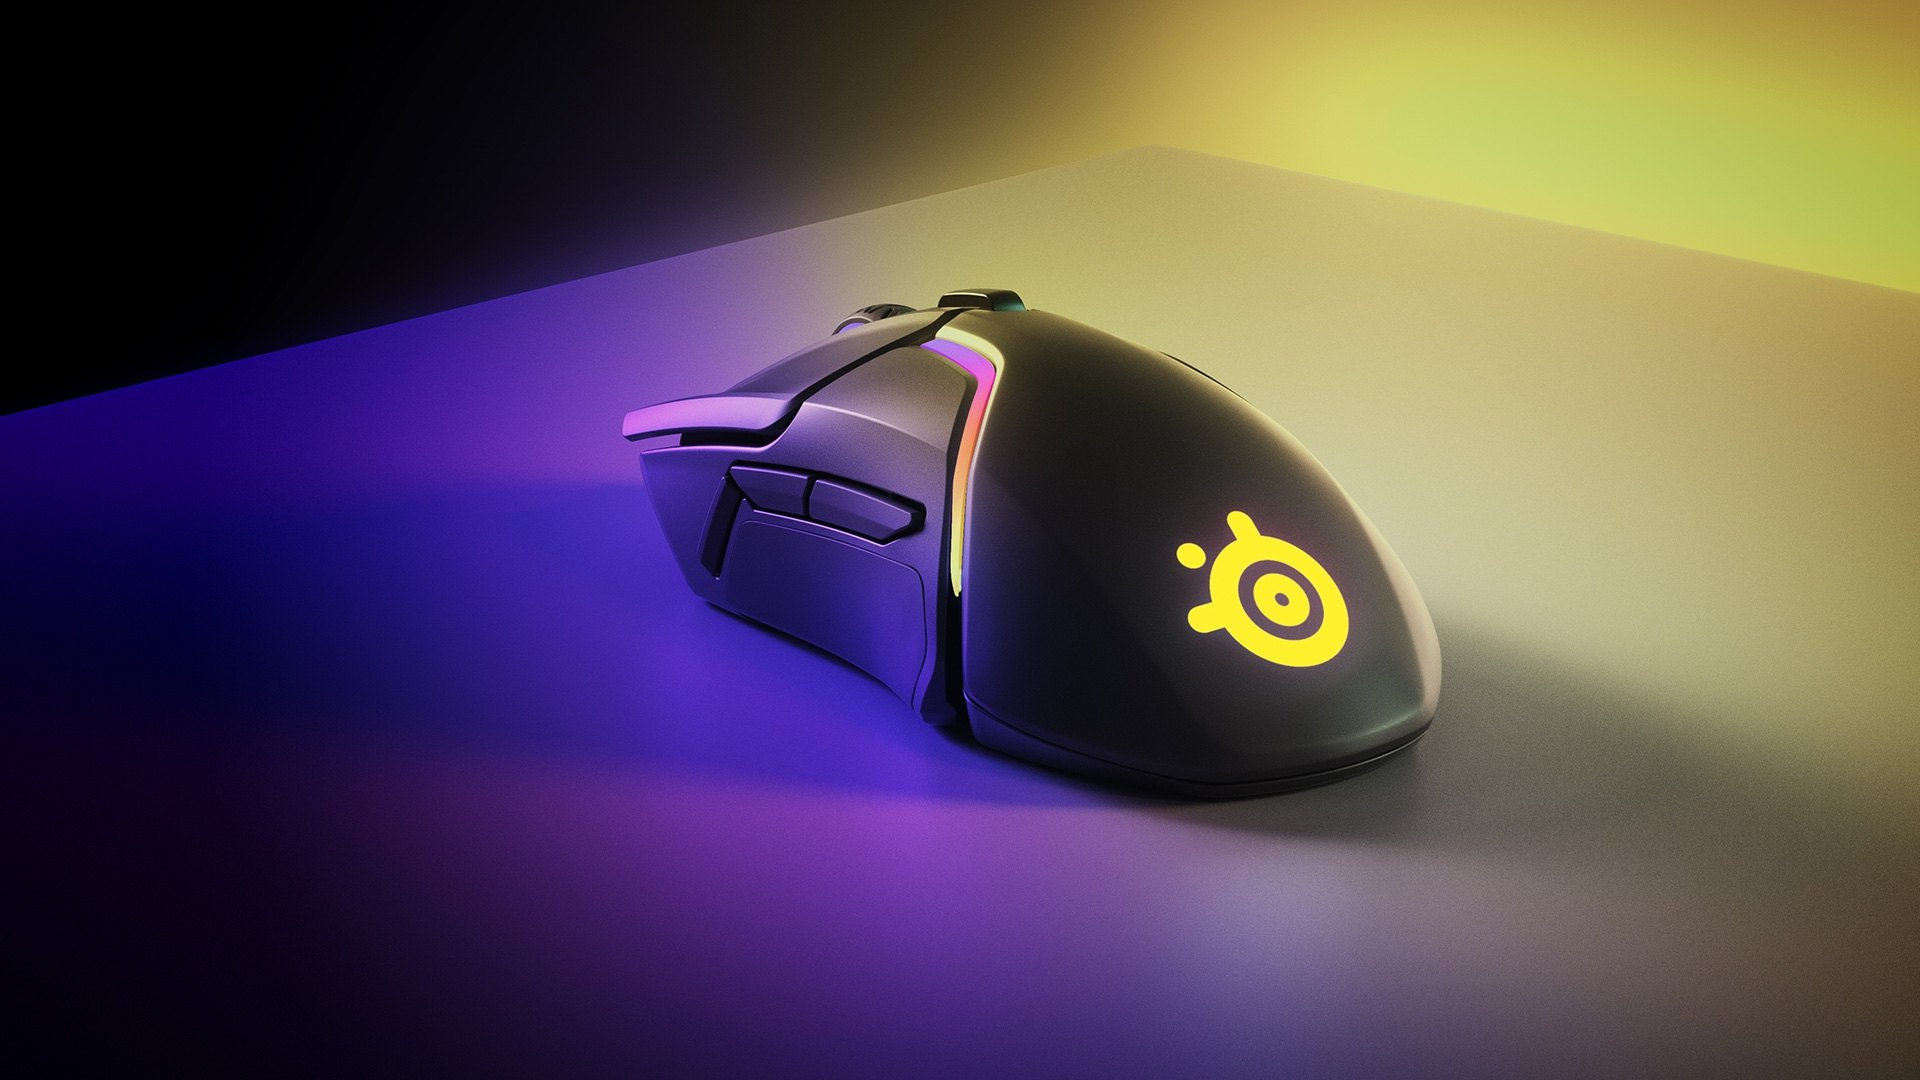 Rival 650 wireless on a mousepad at an angle with bright lighting